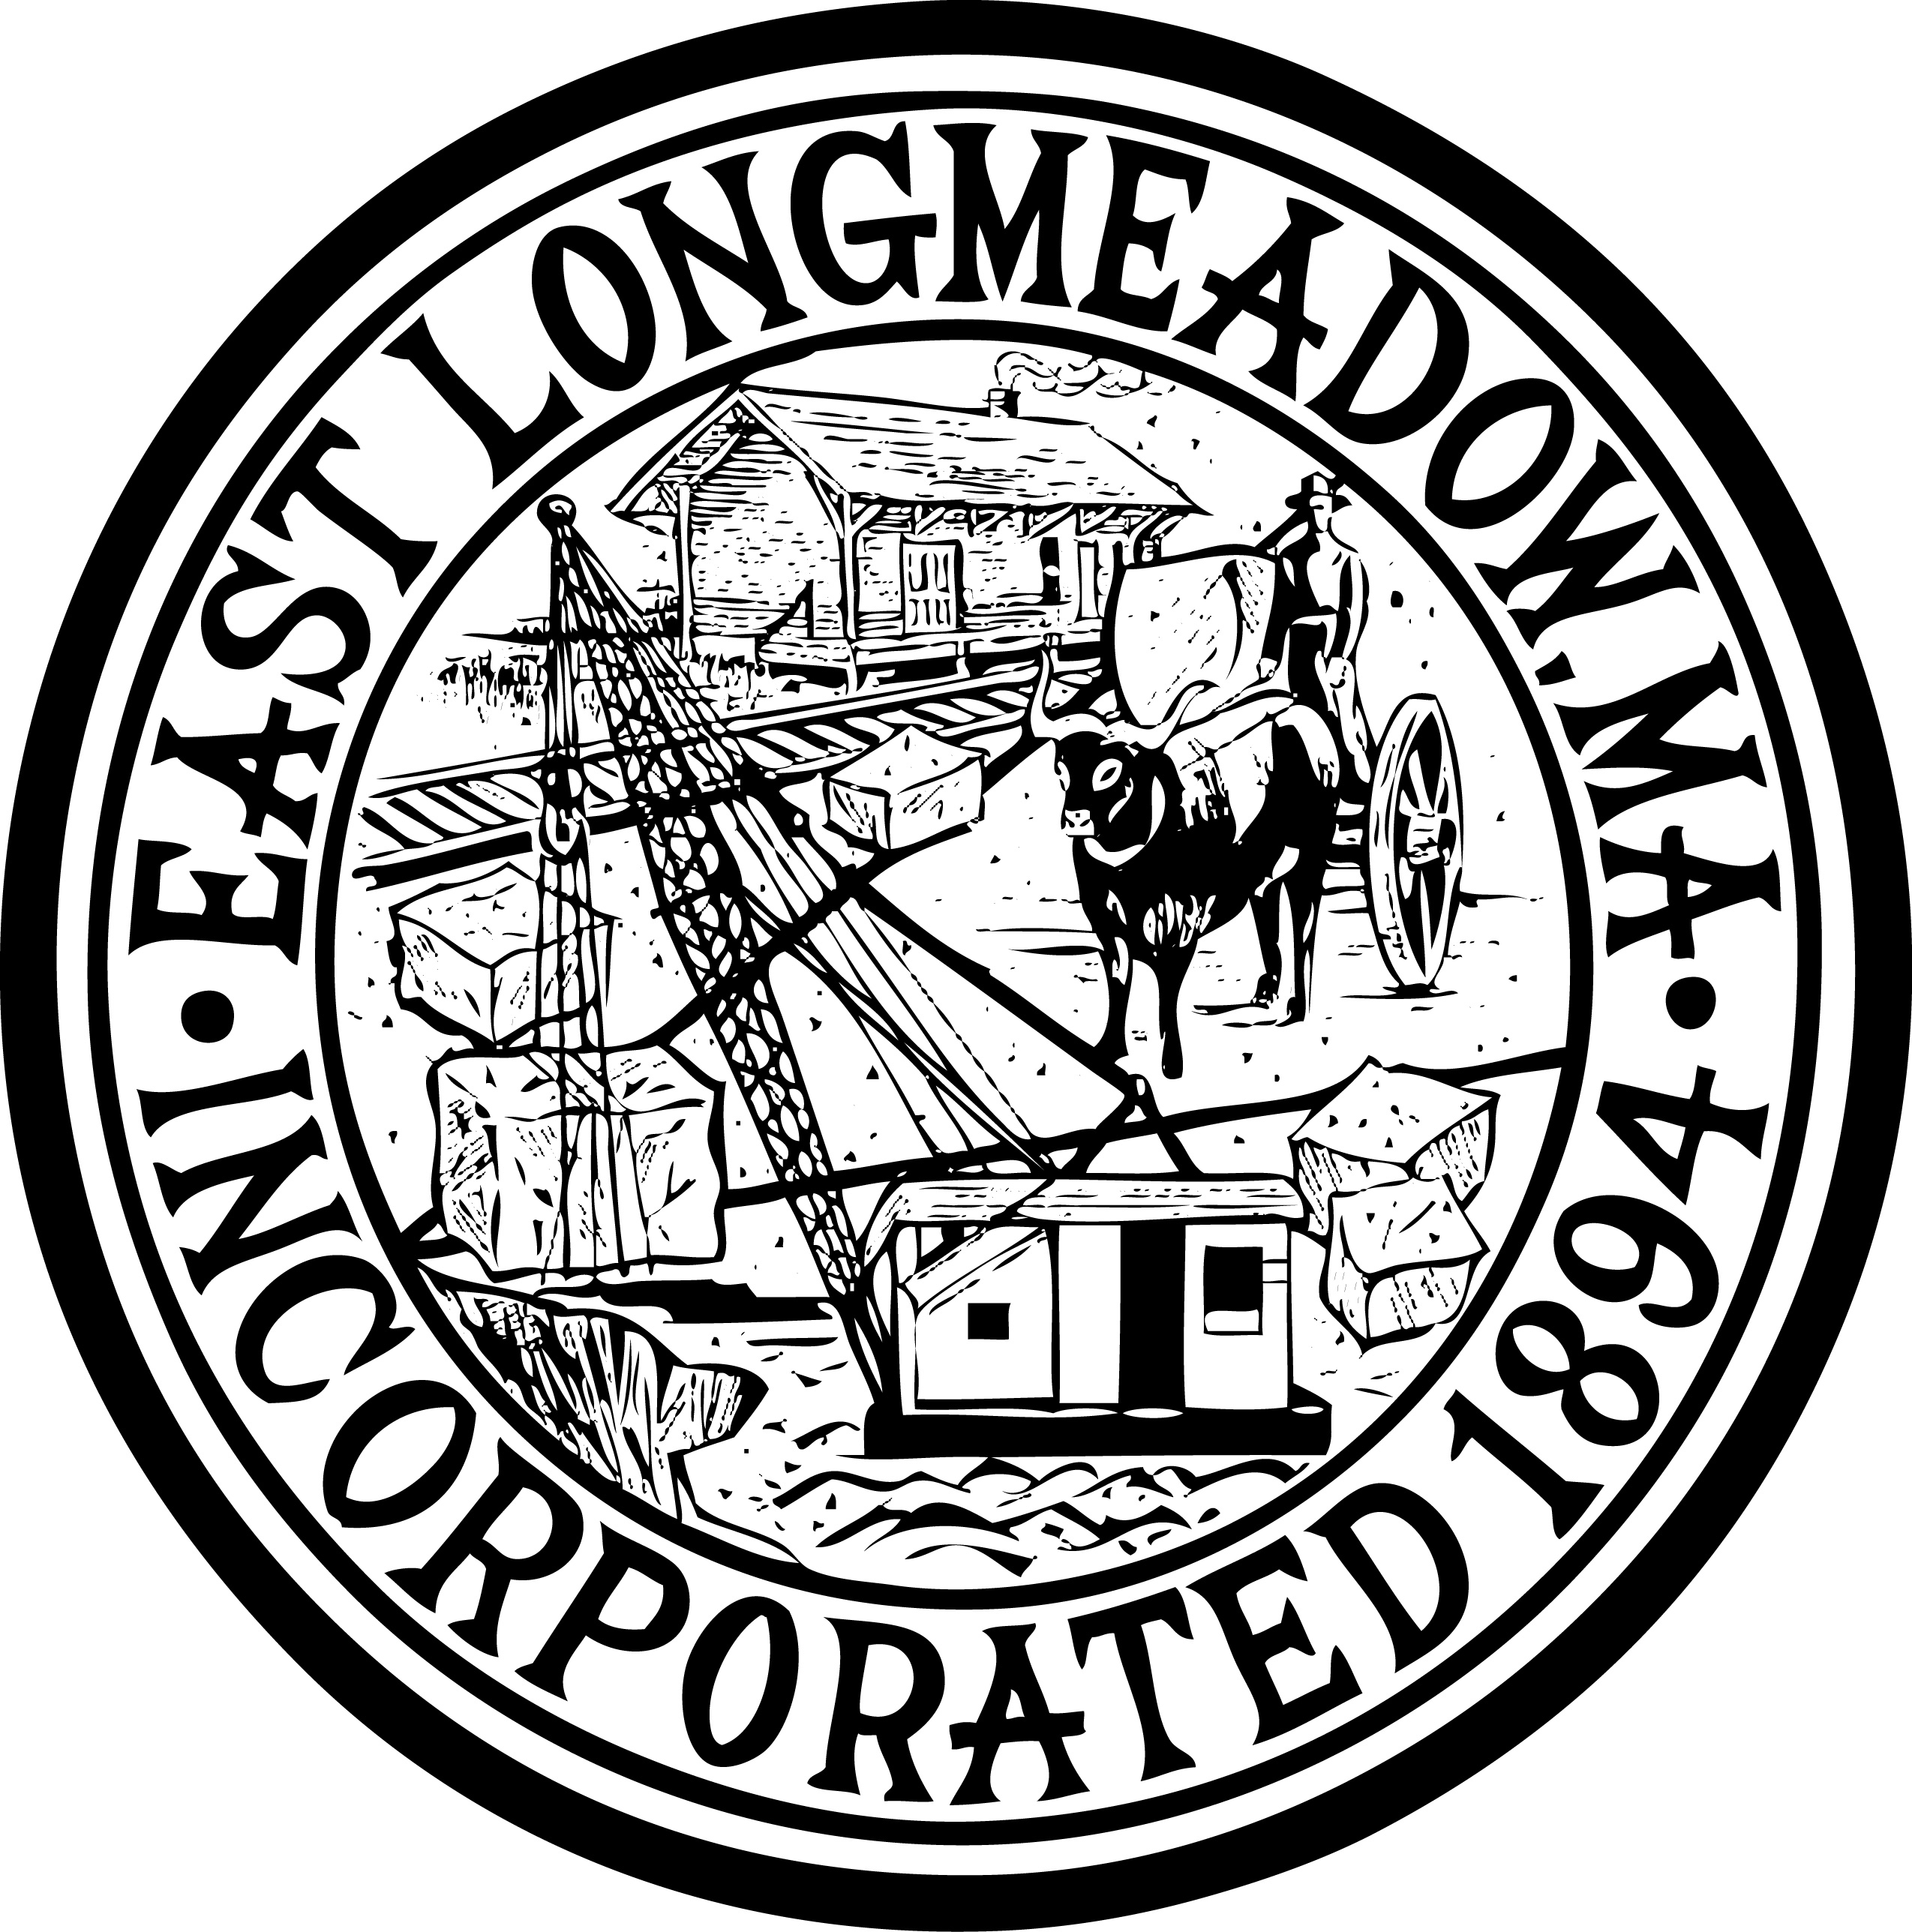 East Longmeadow Seal